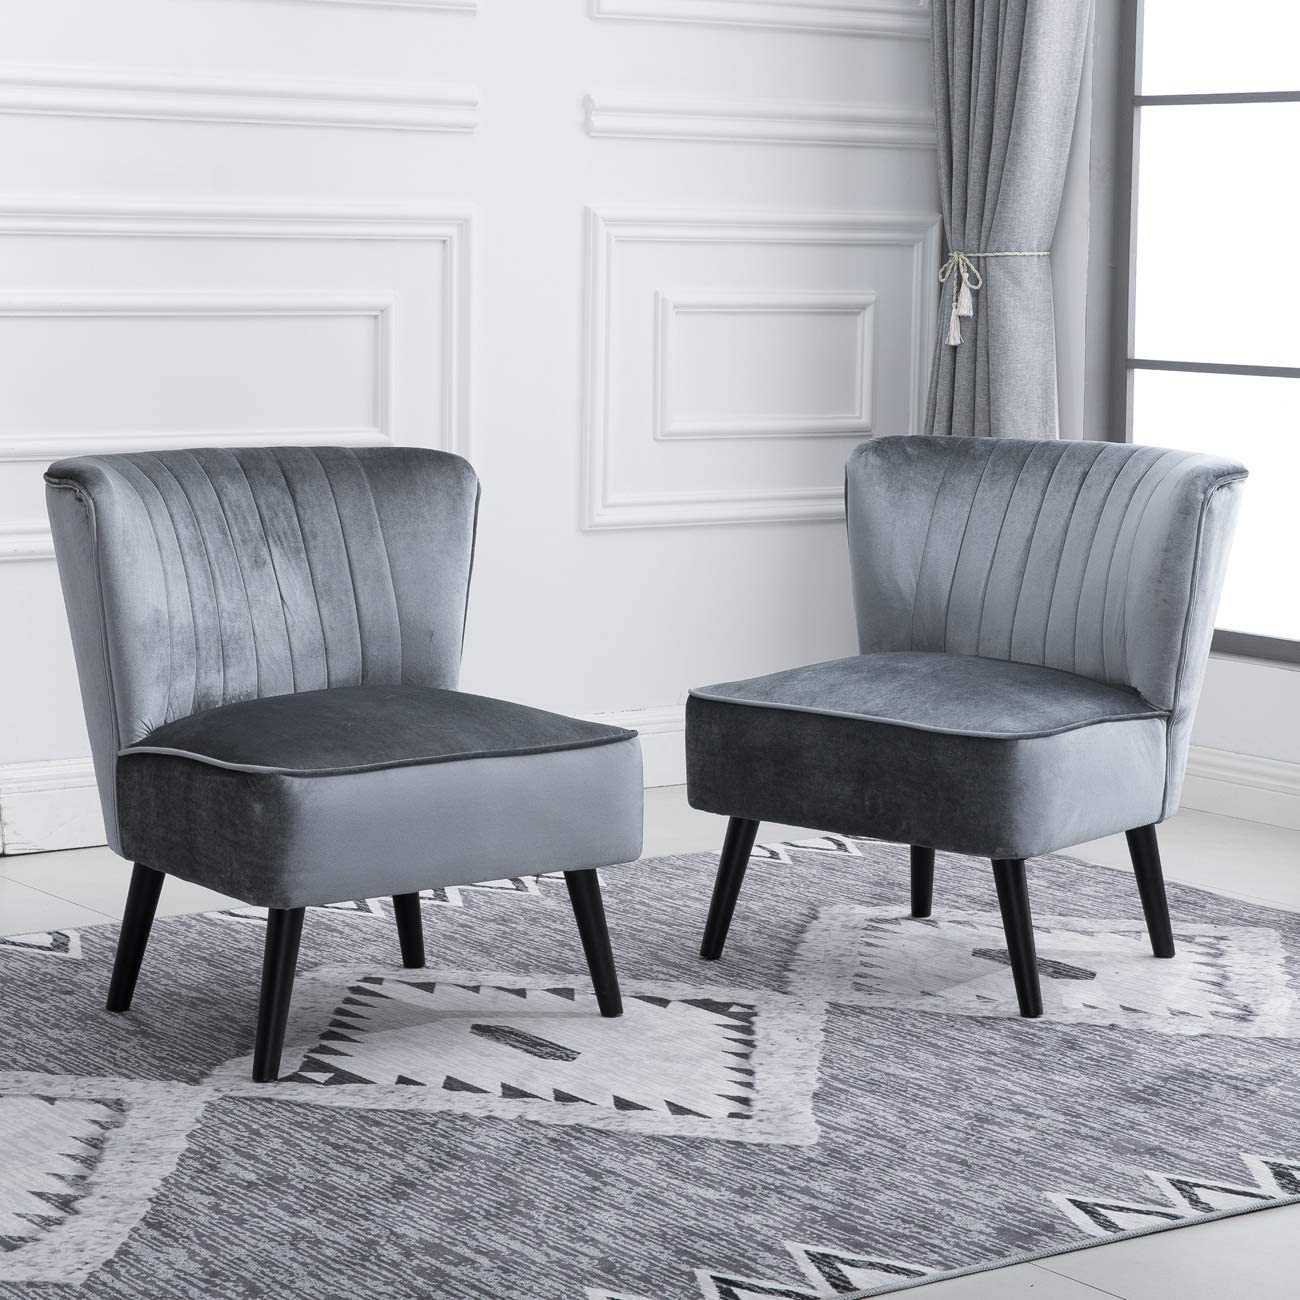 Huisen furniture Accent Living Room Side Wingback Chair Pair Grey Velvet  Fabric Upholstered Seat Chairs Occasional Bedroom Recliner Leisure Chairs  Set